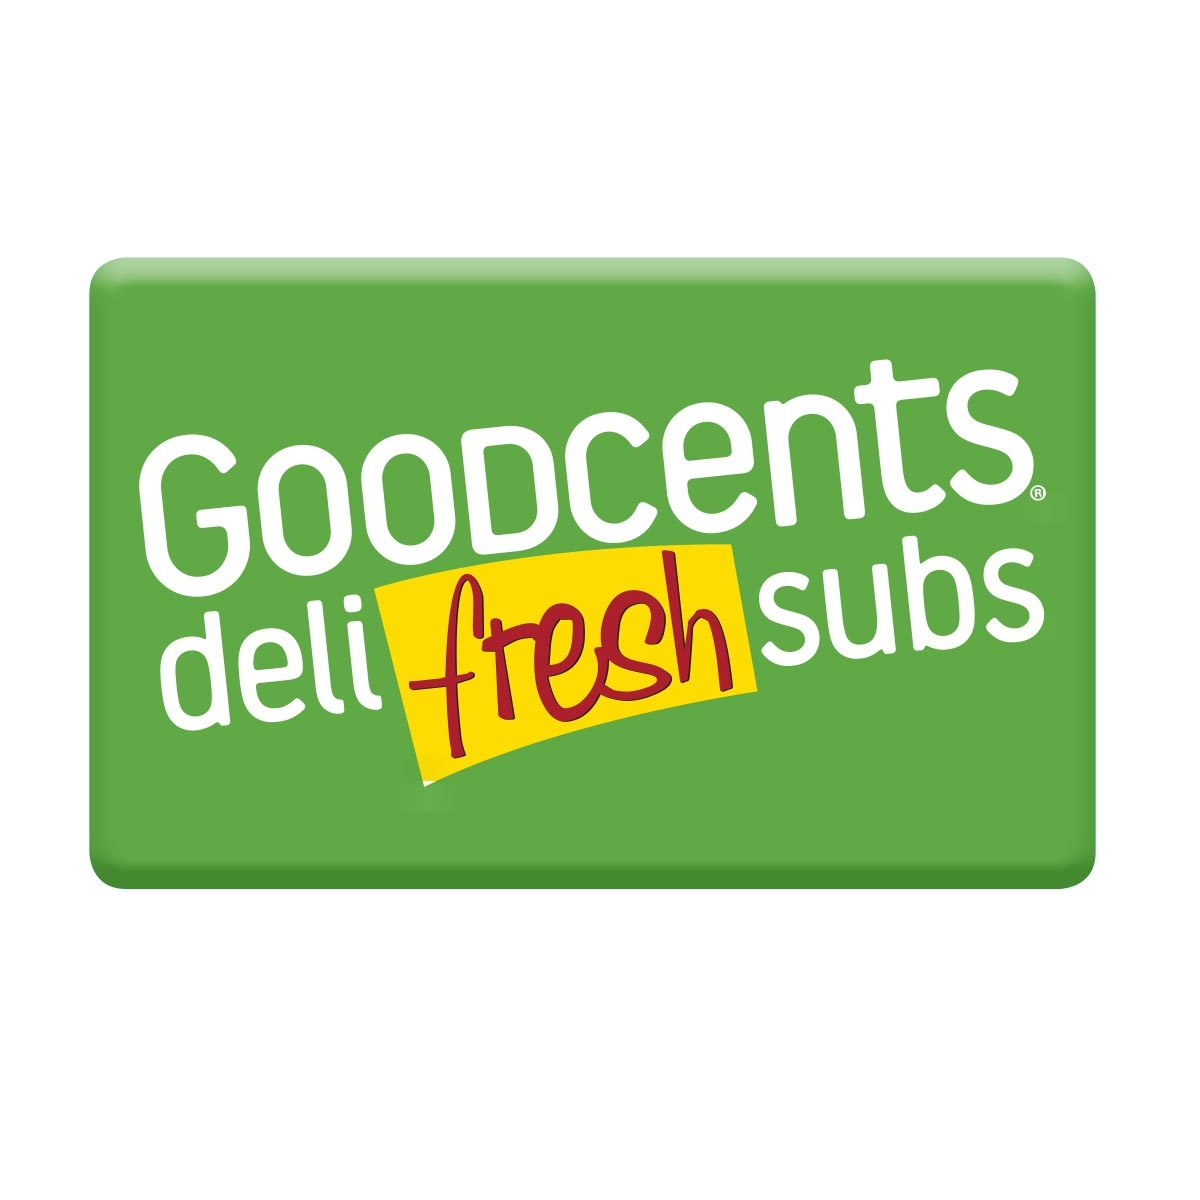 Dine Out Night Goodcents